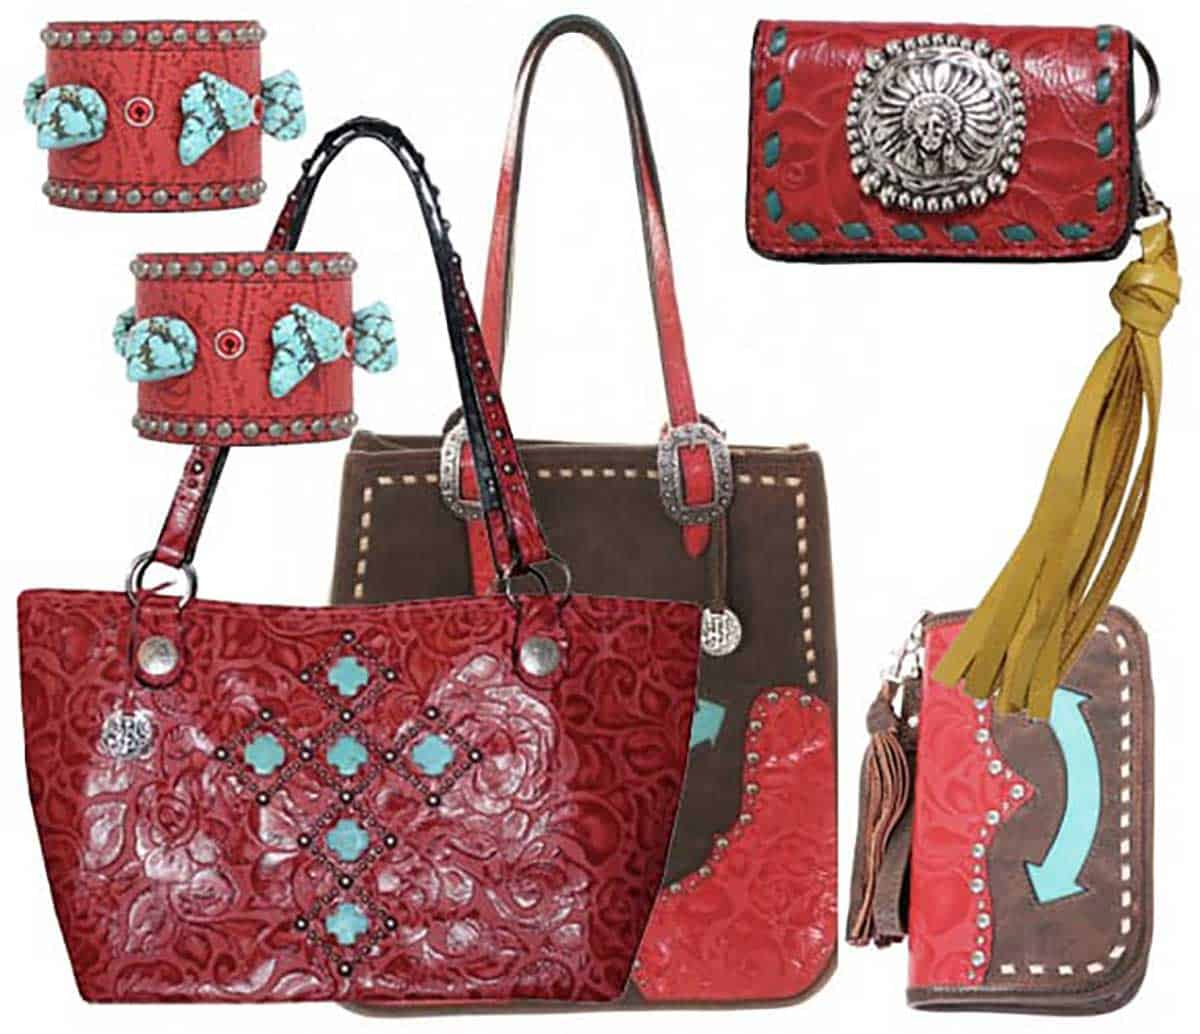 red-accessories-from-Double-J-Saddlery